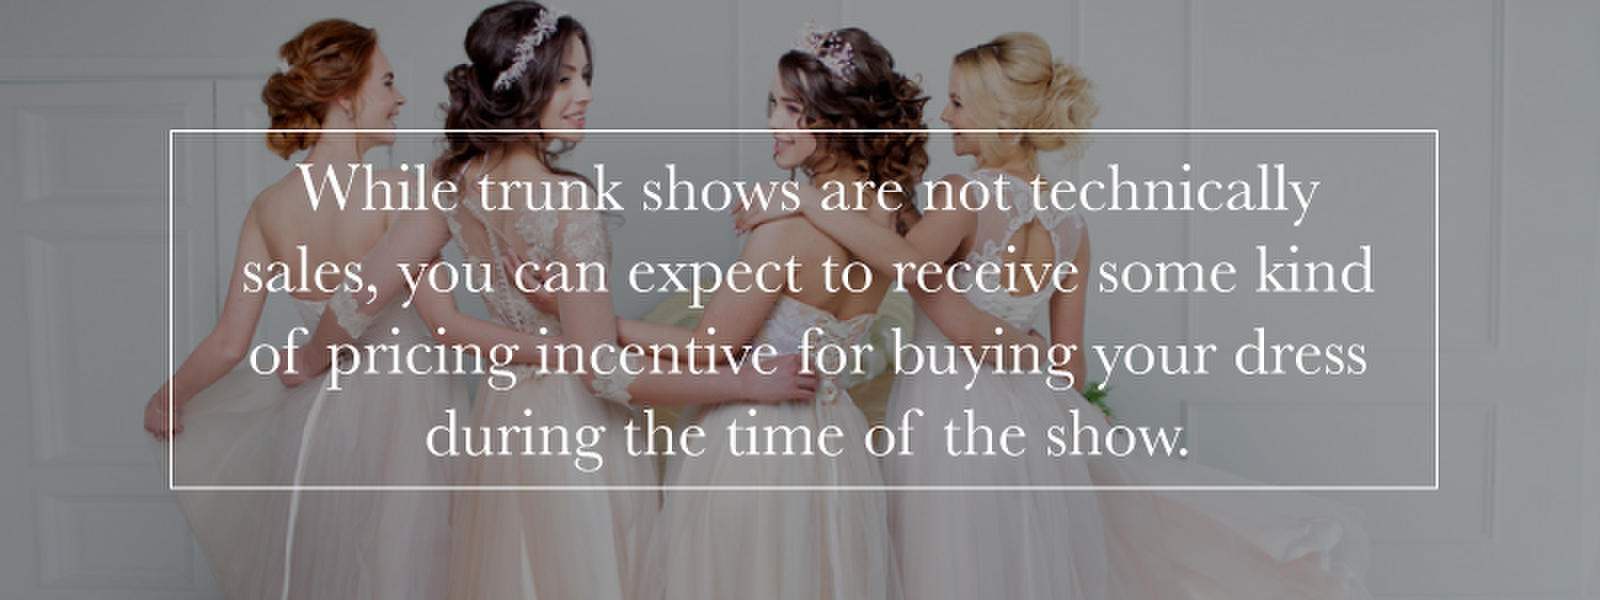 girls in wedding dresses and text about trunk show pricing incentives